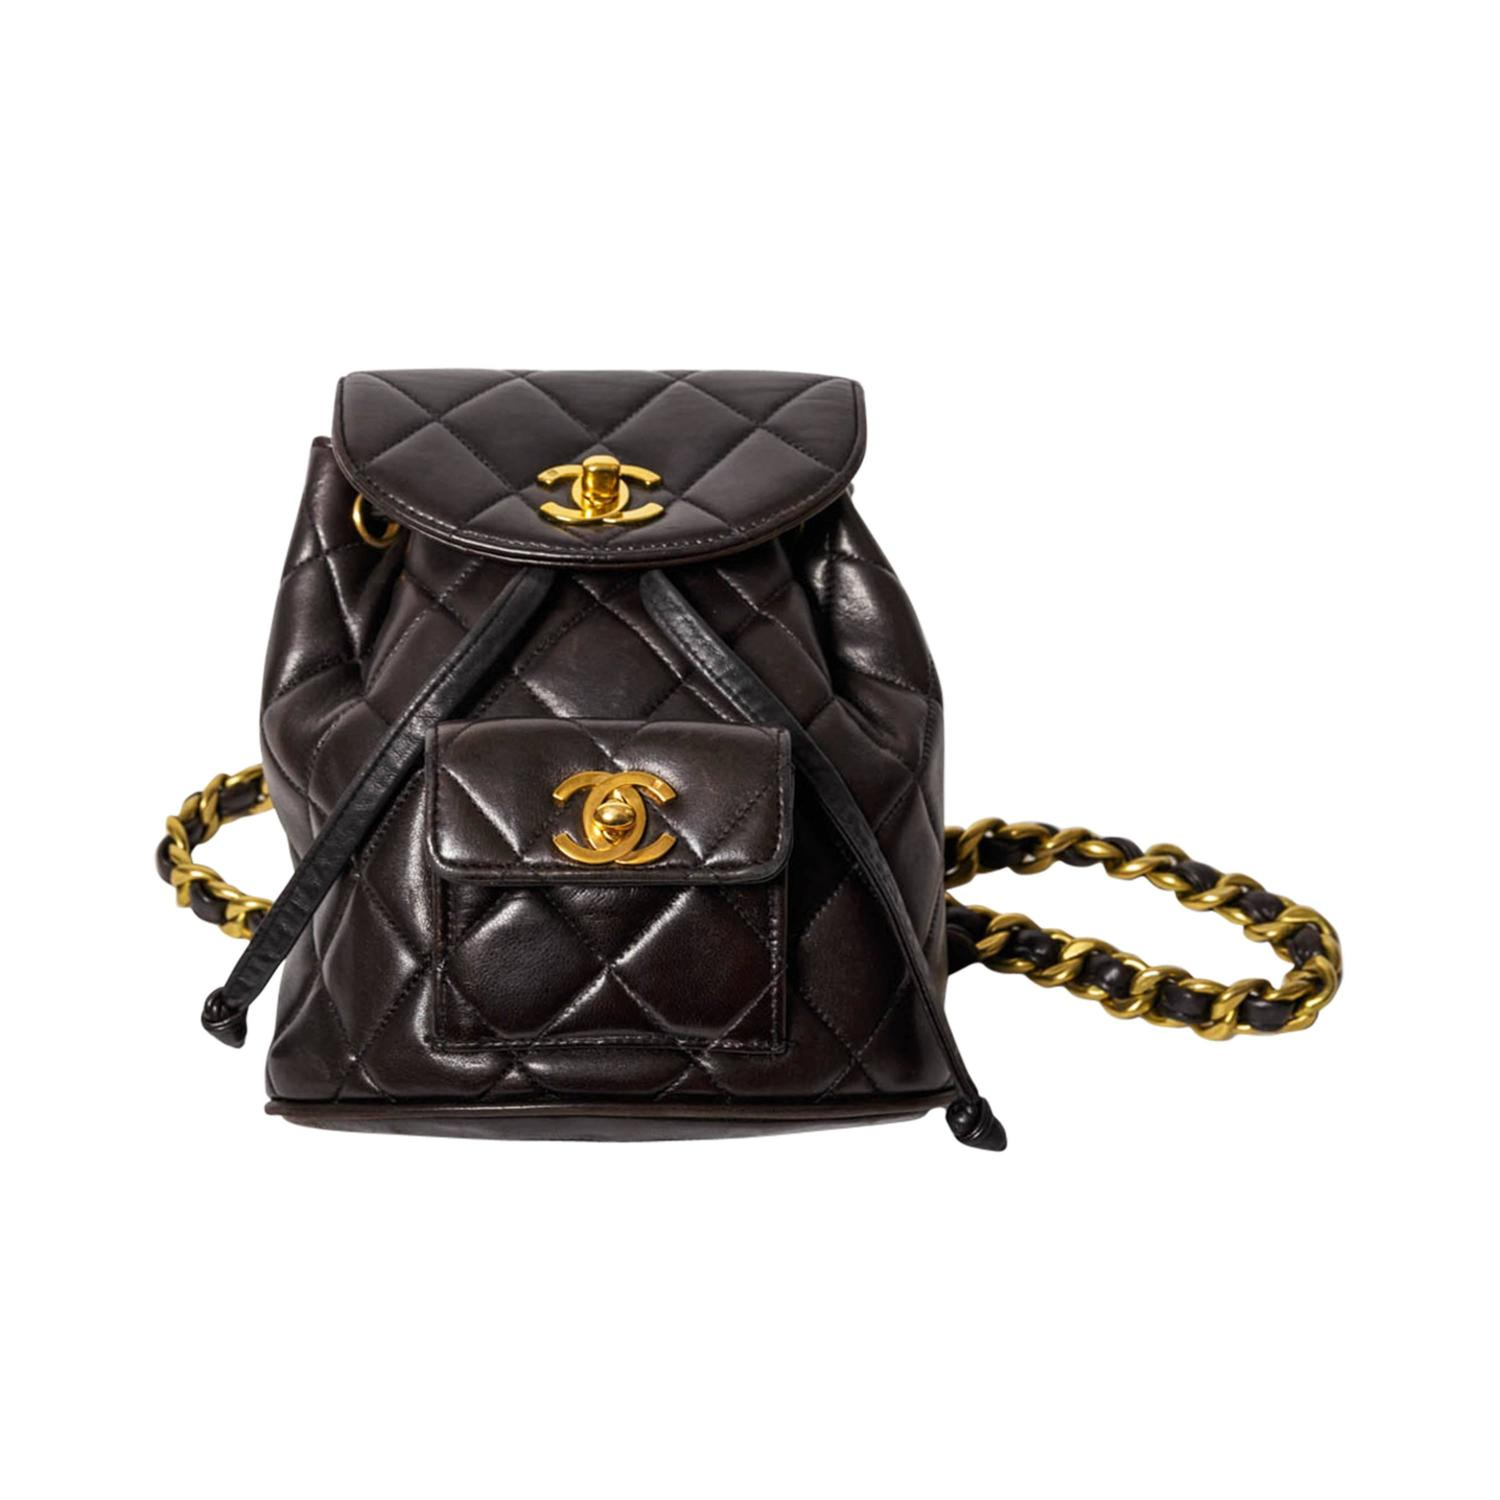 Chanel Vintage Black Quilted Lambskin Leather Mini